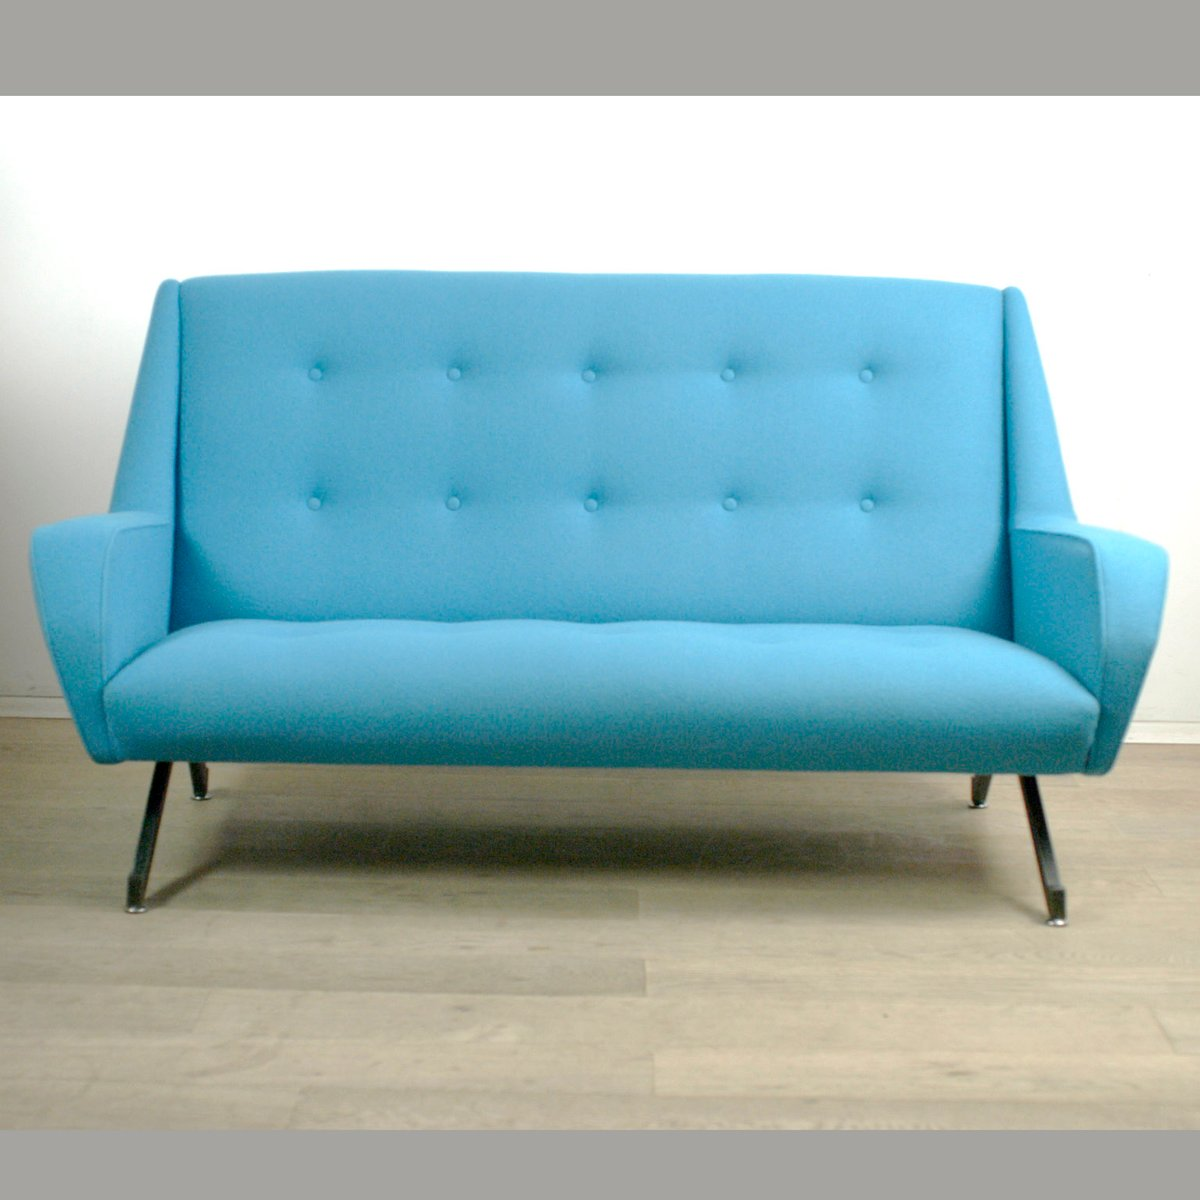 Turquoise Italian Two Seater Sofa 1950s For Sale At Pamono